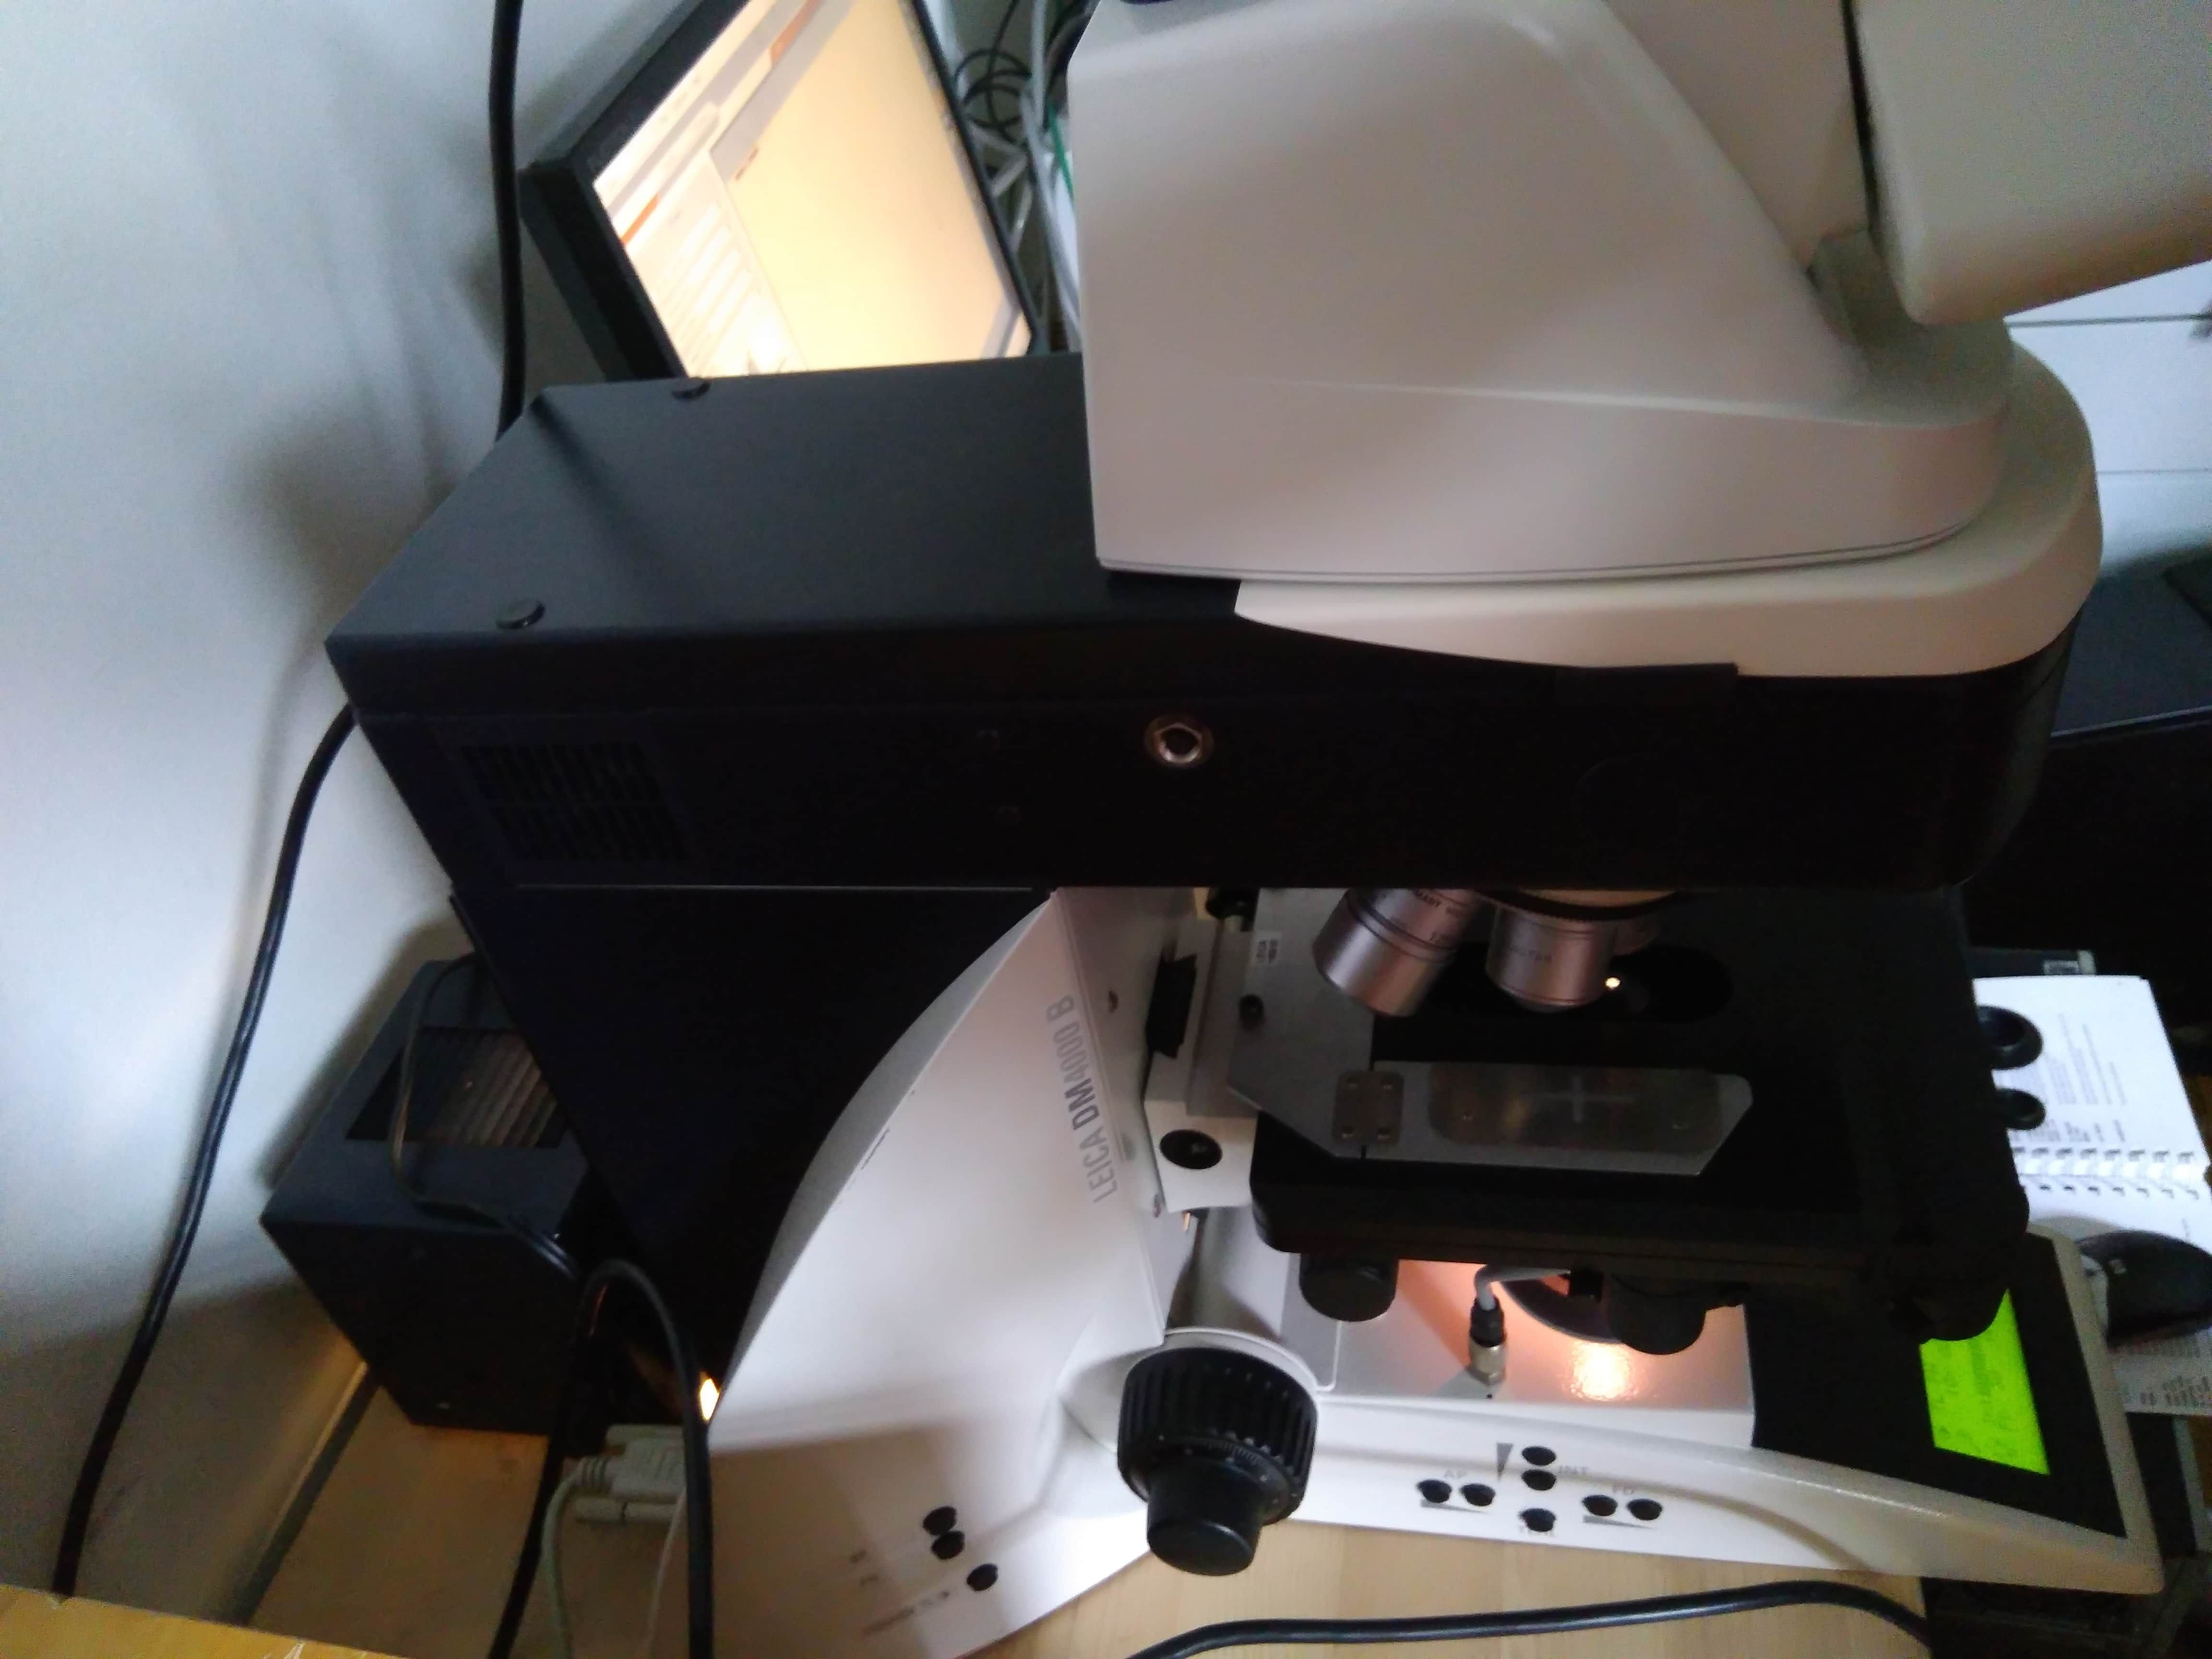 Leica DM4000 B Digital Automated Transmitted Light Axis Microscope